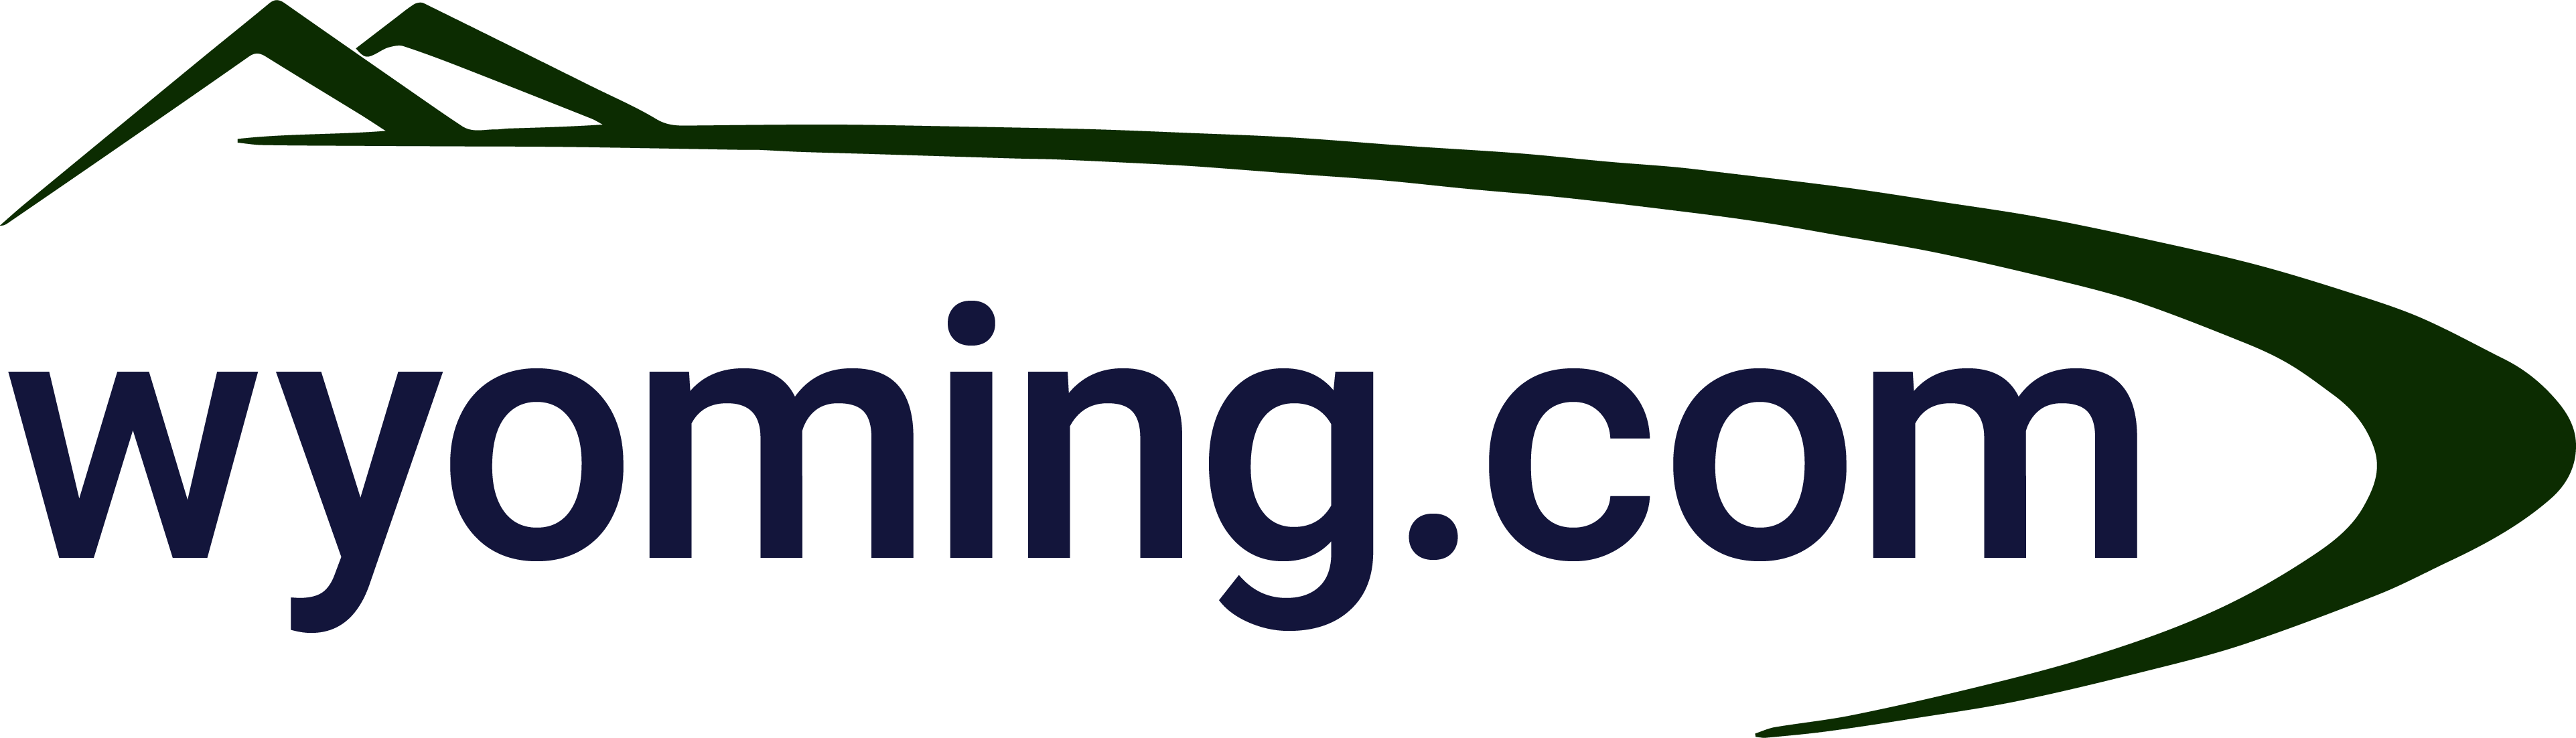 Wyoming.com Logo